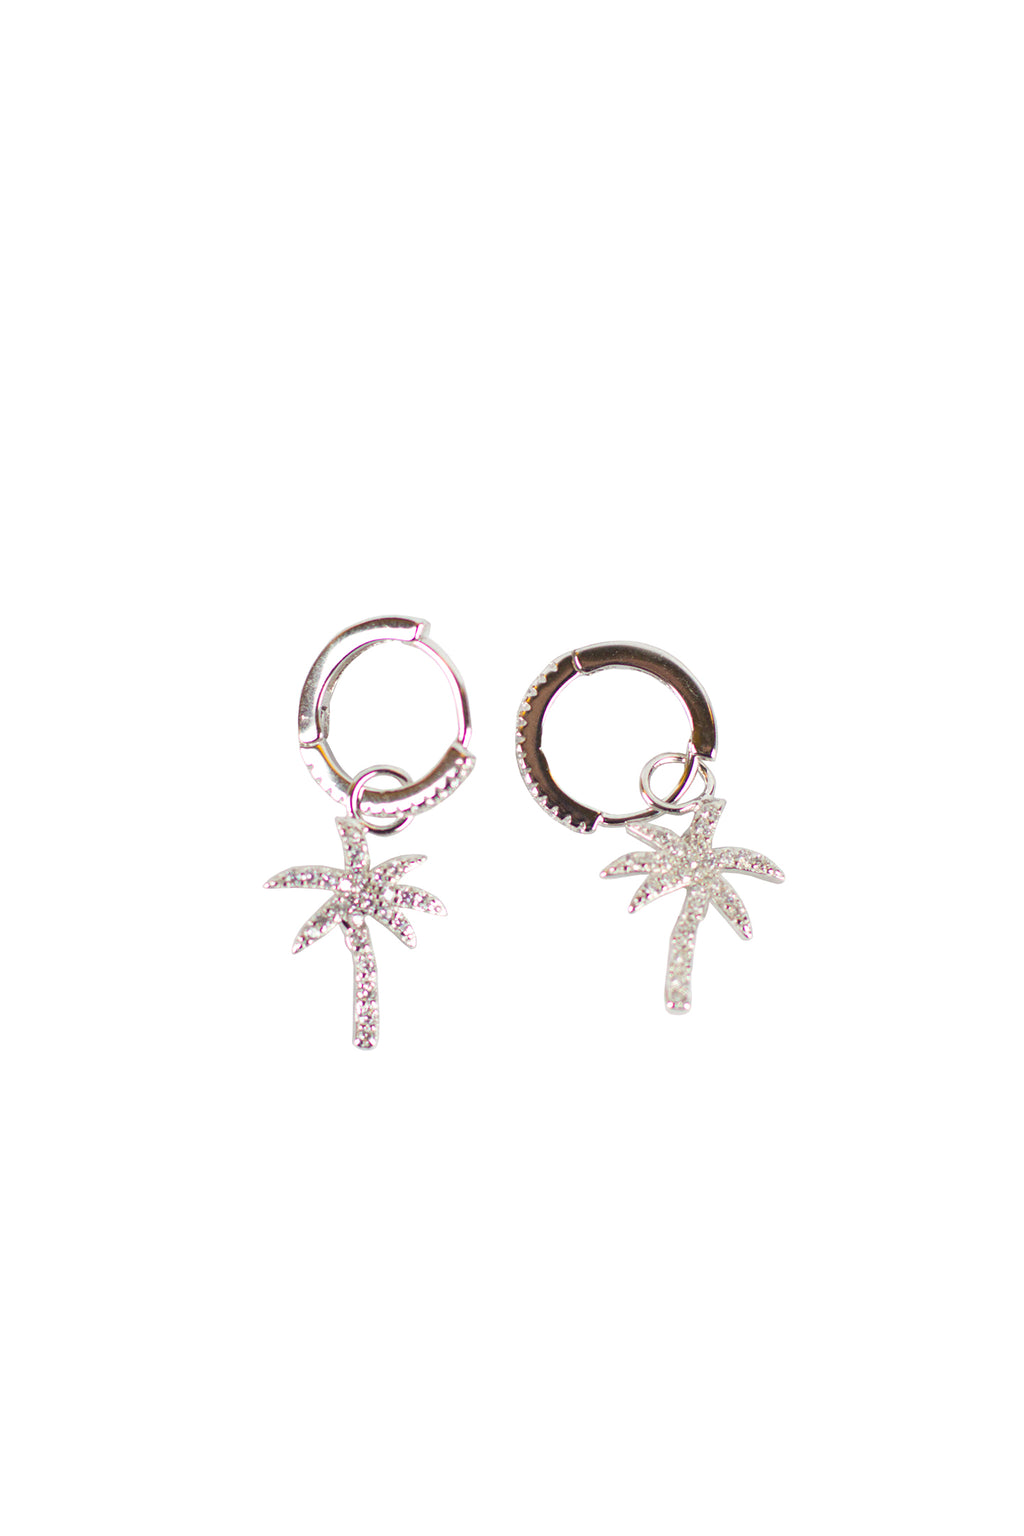 Shadow - Silver round earing palm tree w/ stones